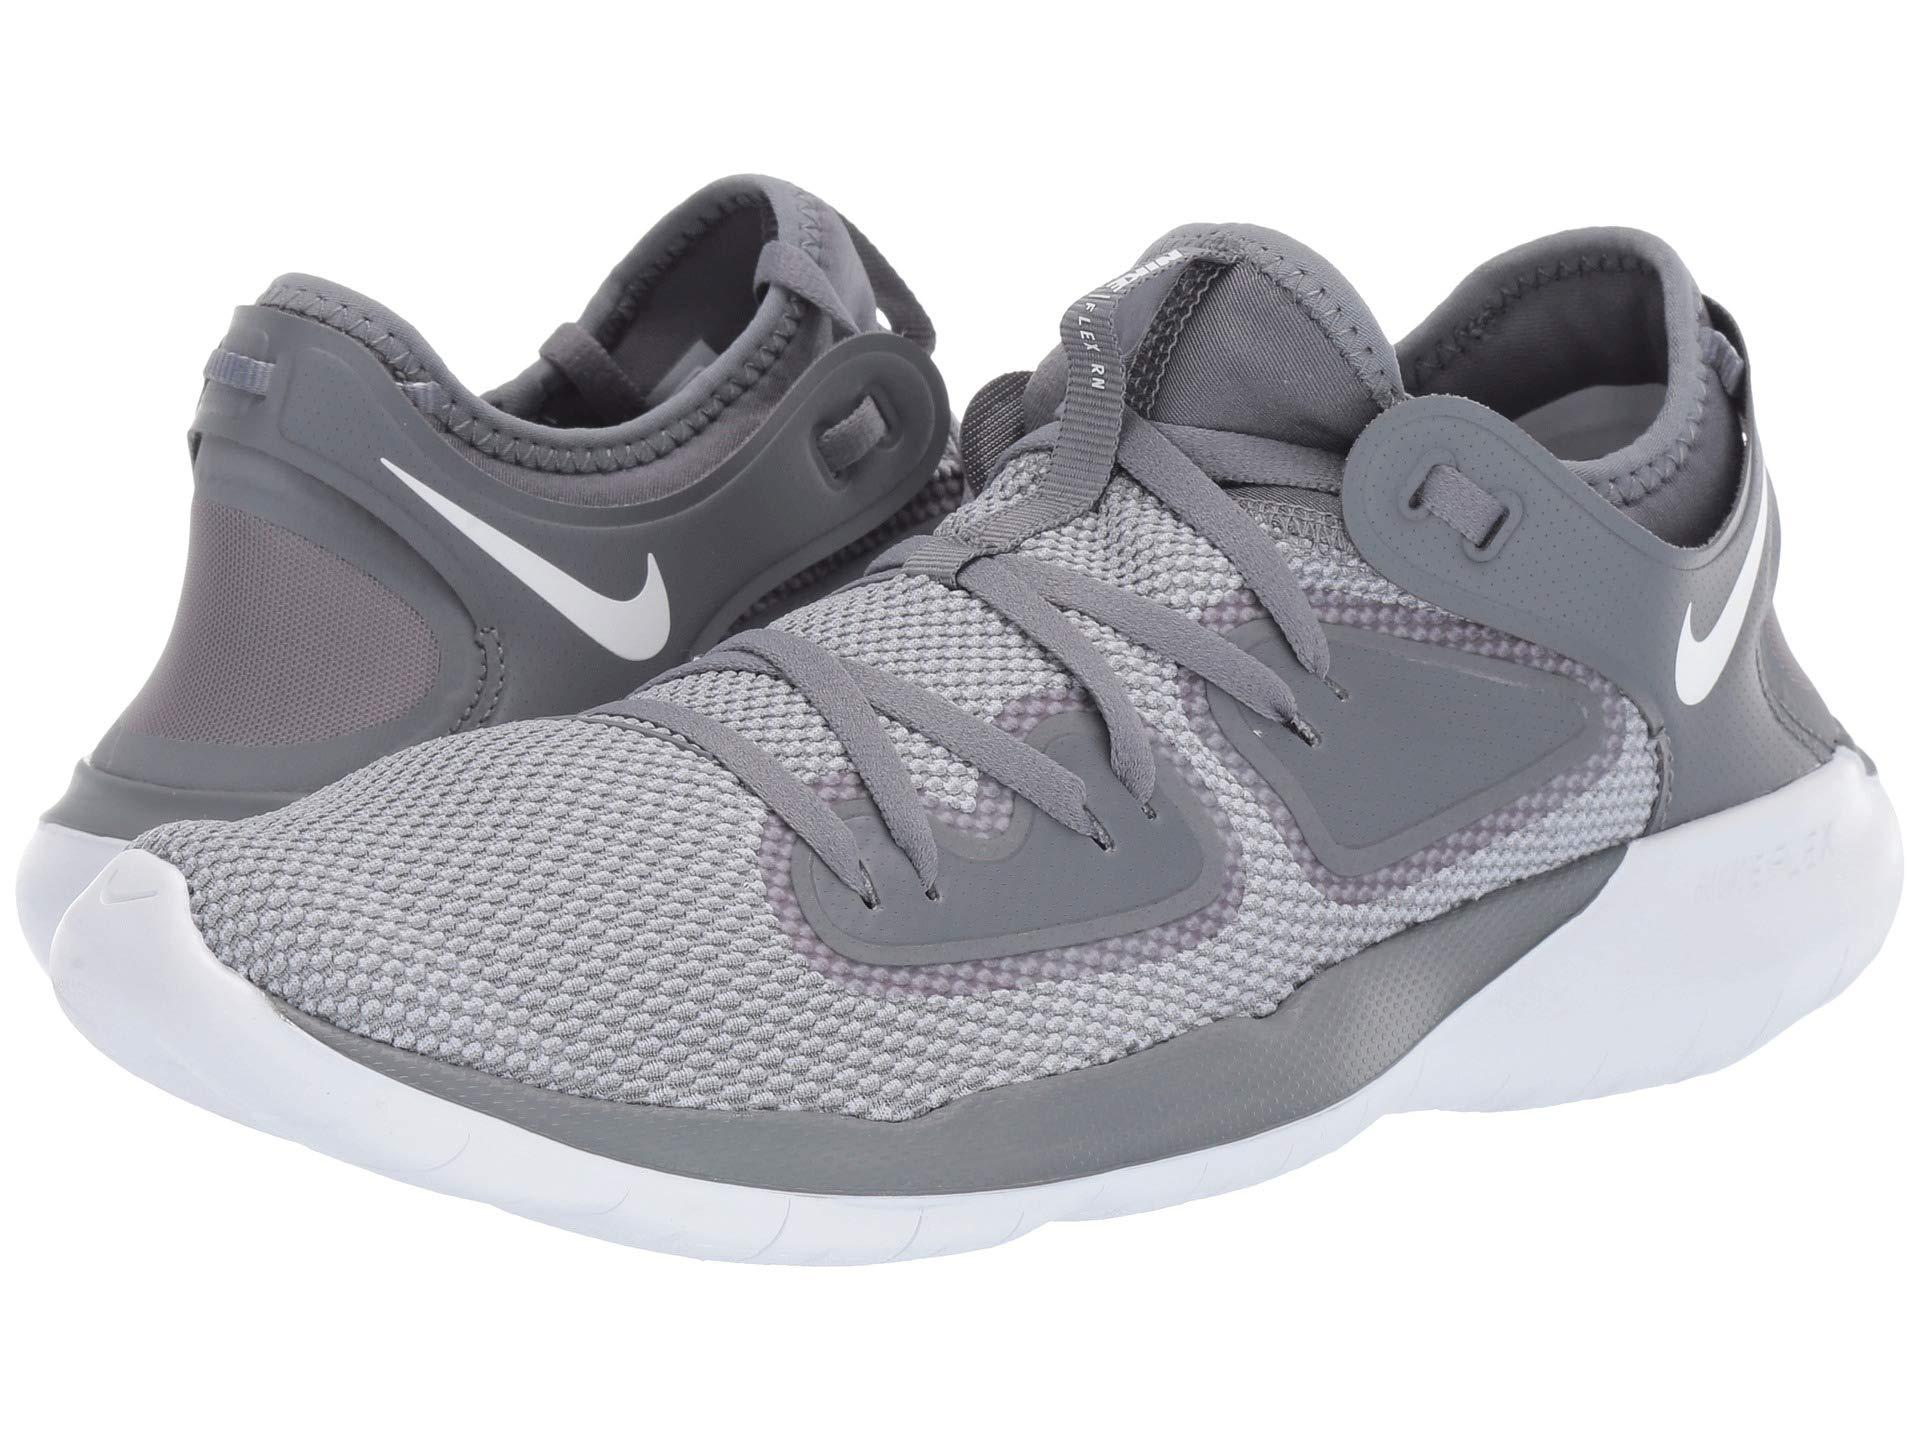 275369acc4b3c Lyst - Nike Flex 2019 Rn (cool Grey black wolf Grey white) Men s ...